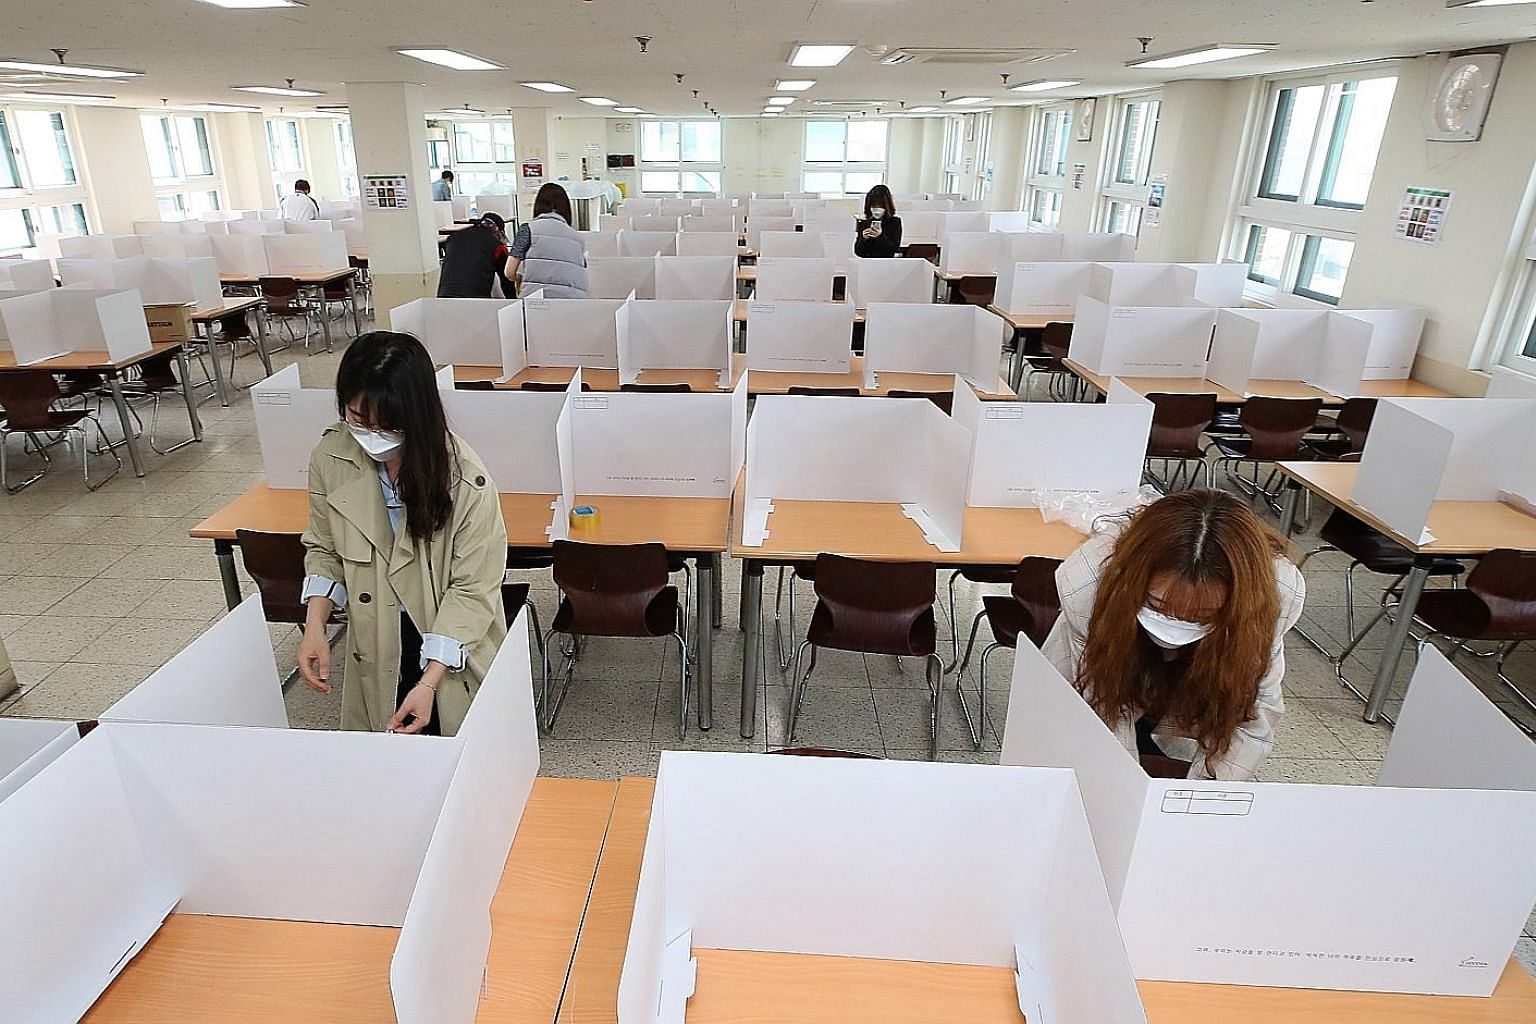 Teachers setting up dividers on tables in a cafeteria at the Duksoo High School in Seoul yesterday to get the school ready for reopening next Wednesday. Incheon city is on high alert for mass infections, after a 25-year-old teacher and resident was f